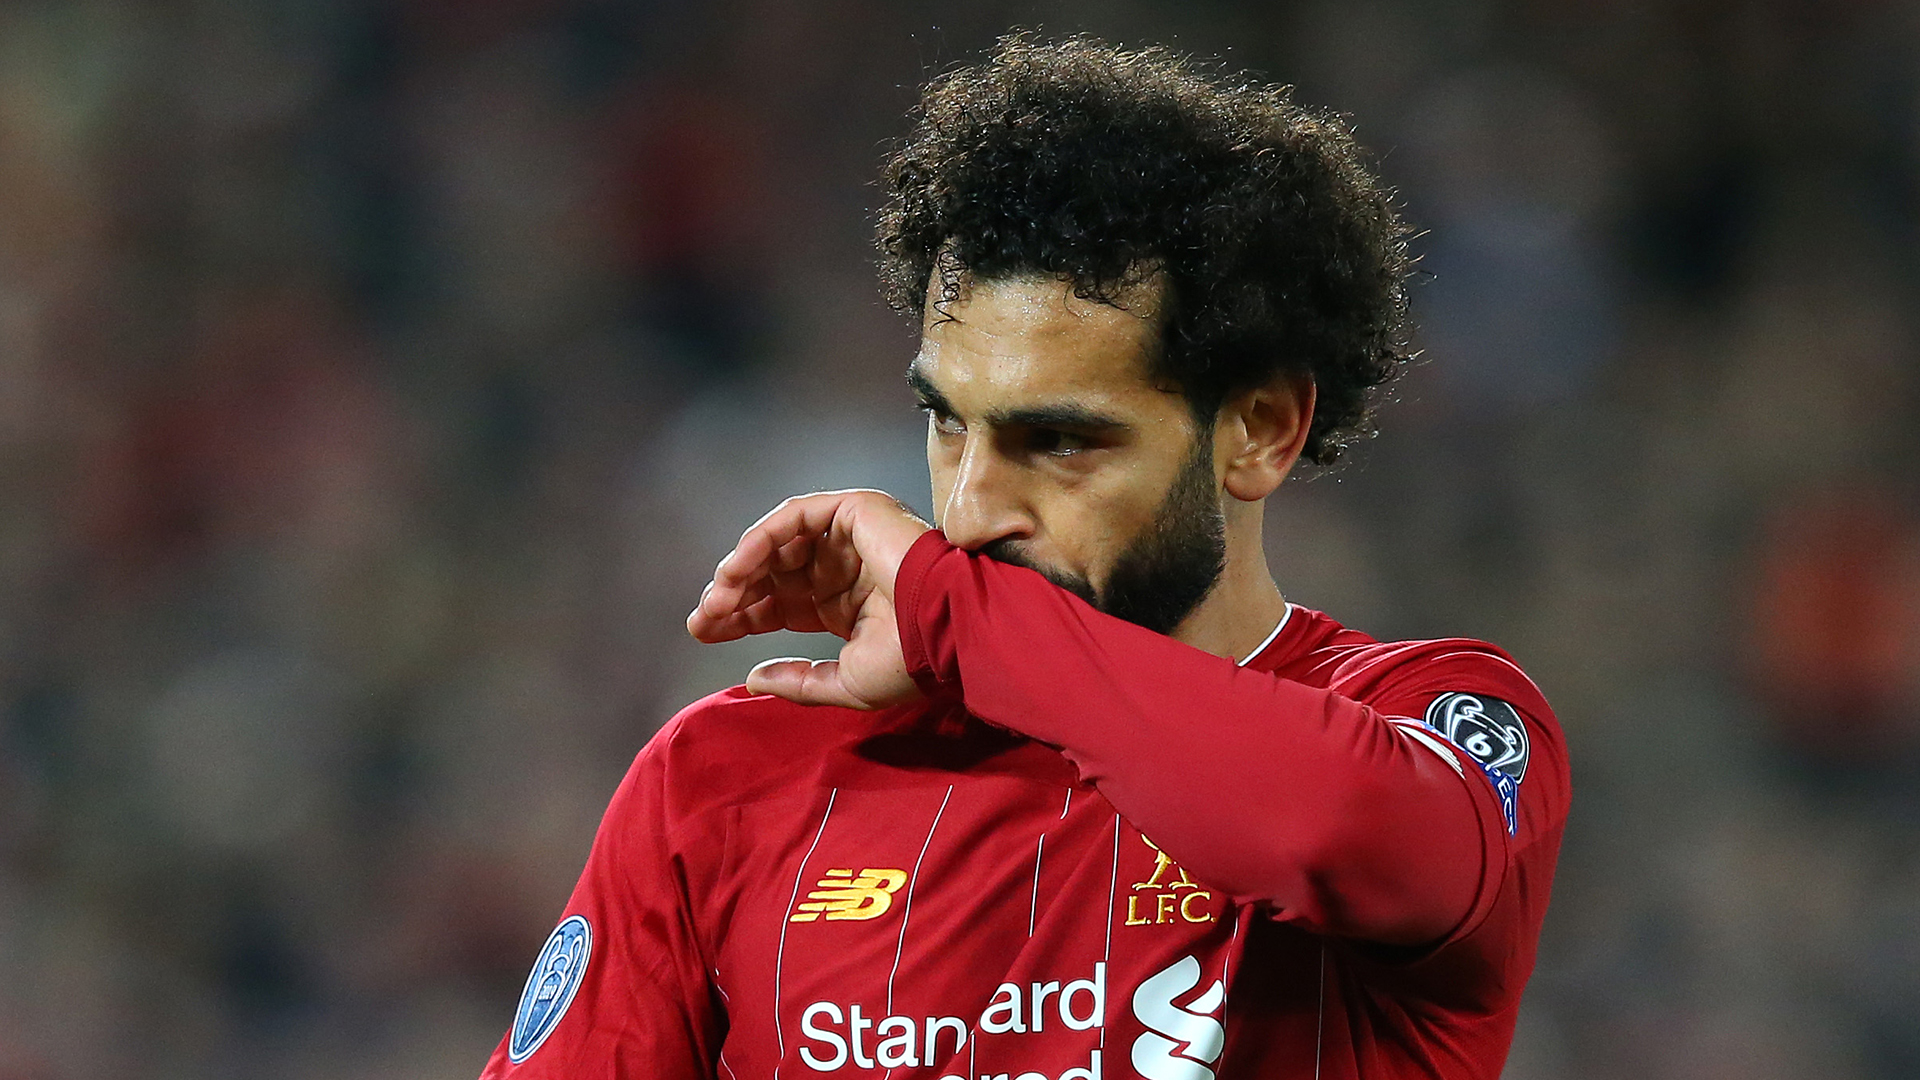 Salah and Mane must do their talking on the pitch when Liverpool meet Manchester United